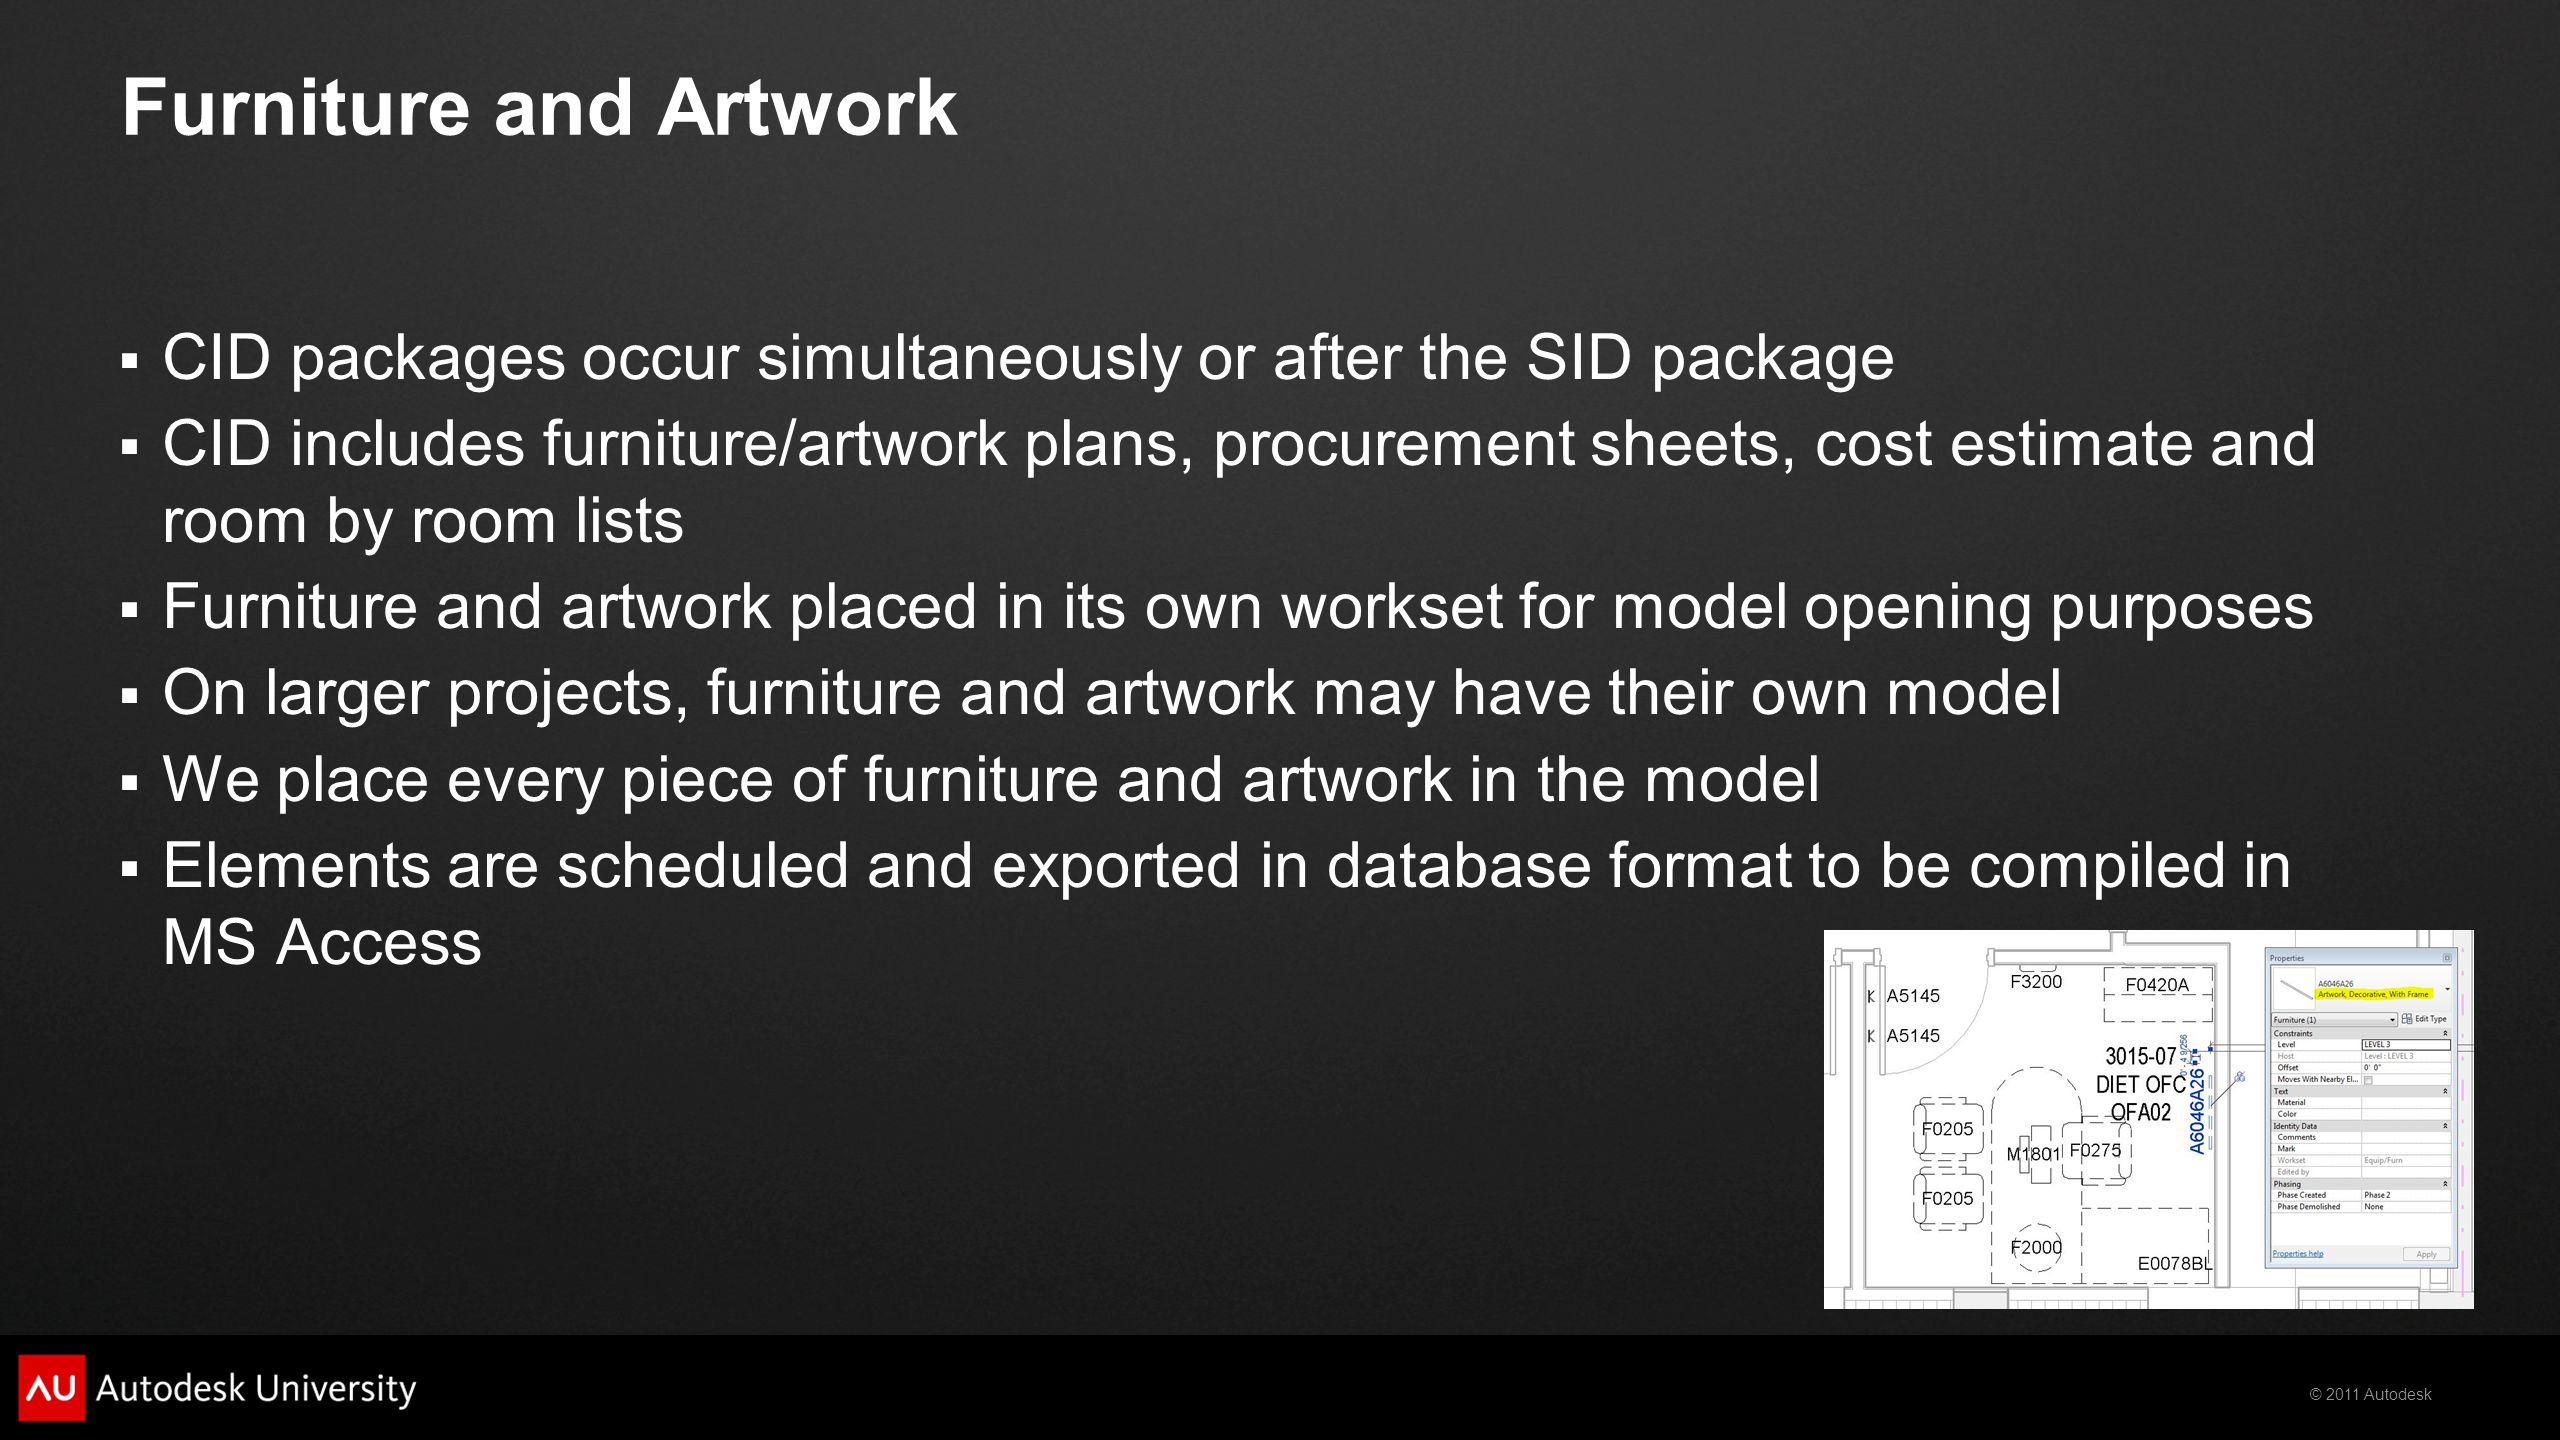 Furniture and Artwork CID packages occur simultaneously or after the SID package.